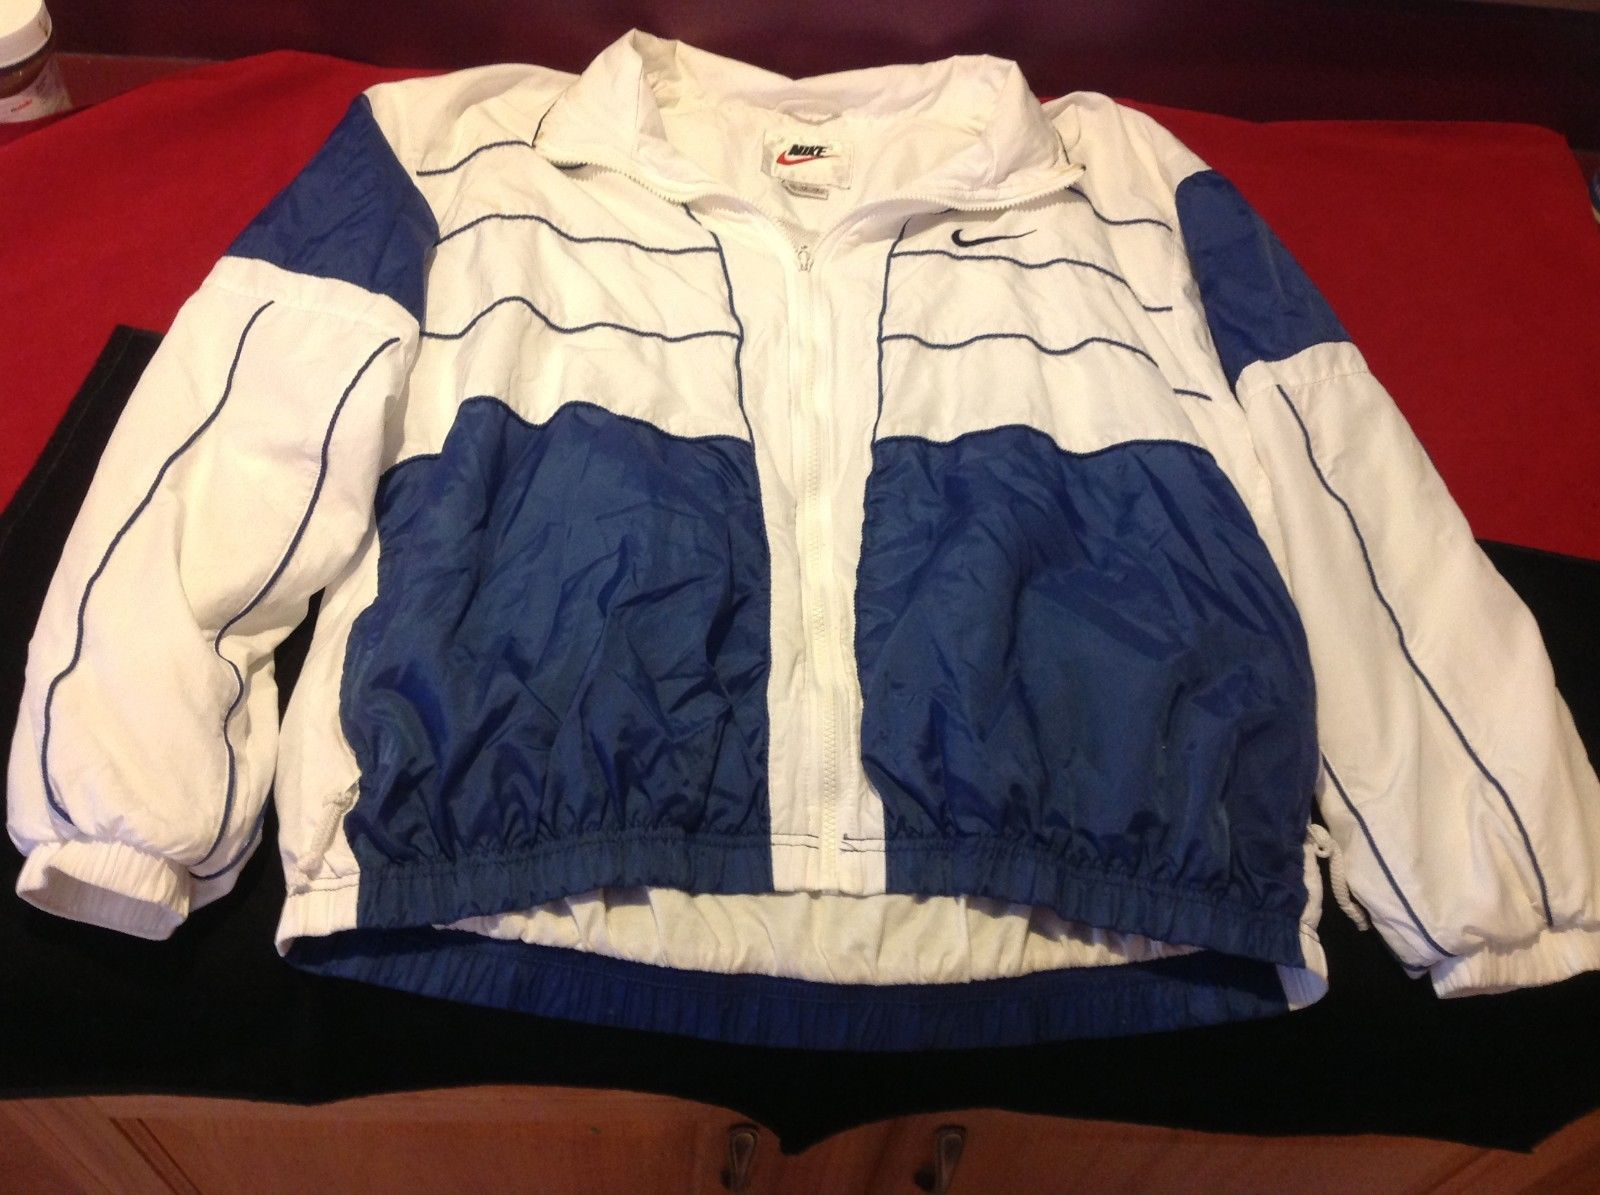 Nike Unisex blue white Jacket with zipper size xl made in Thailand